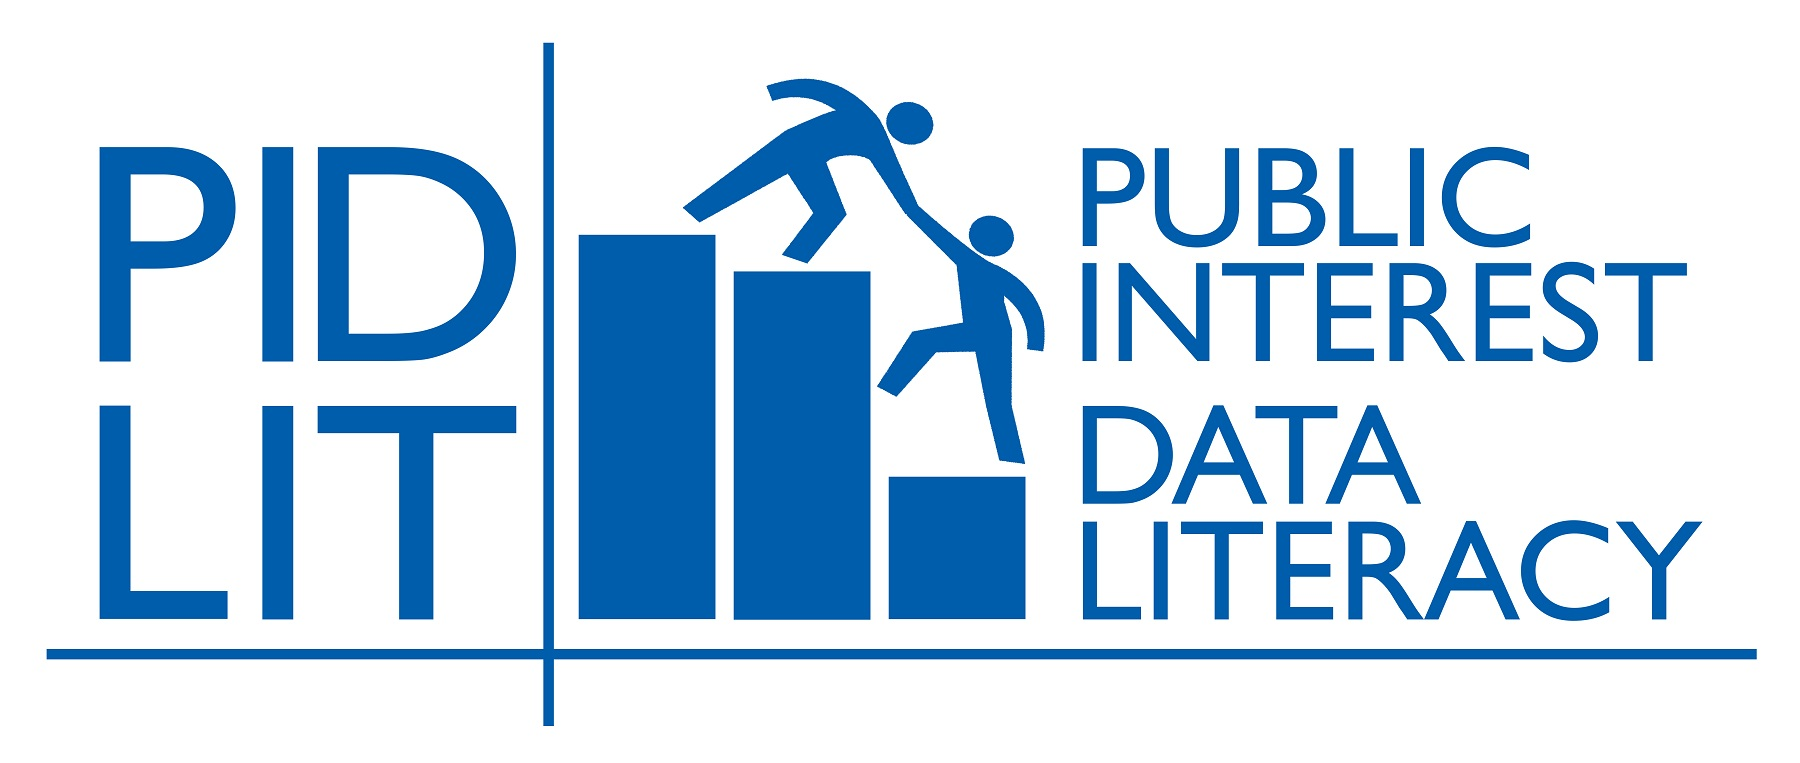 Data Empowered Events - Data Literacy as a Tool for Social Justice